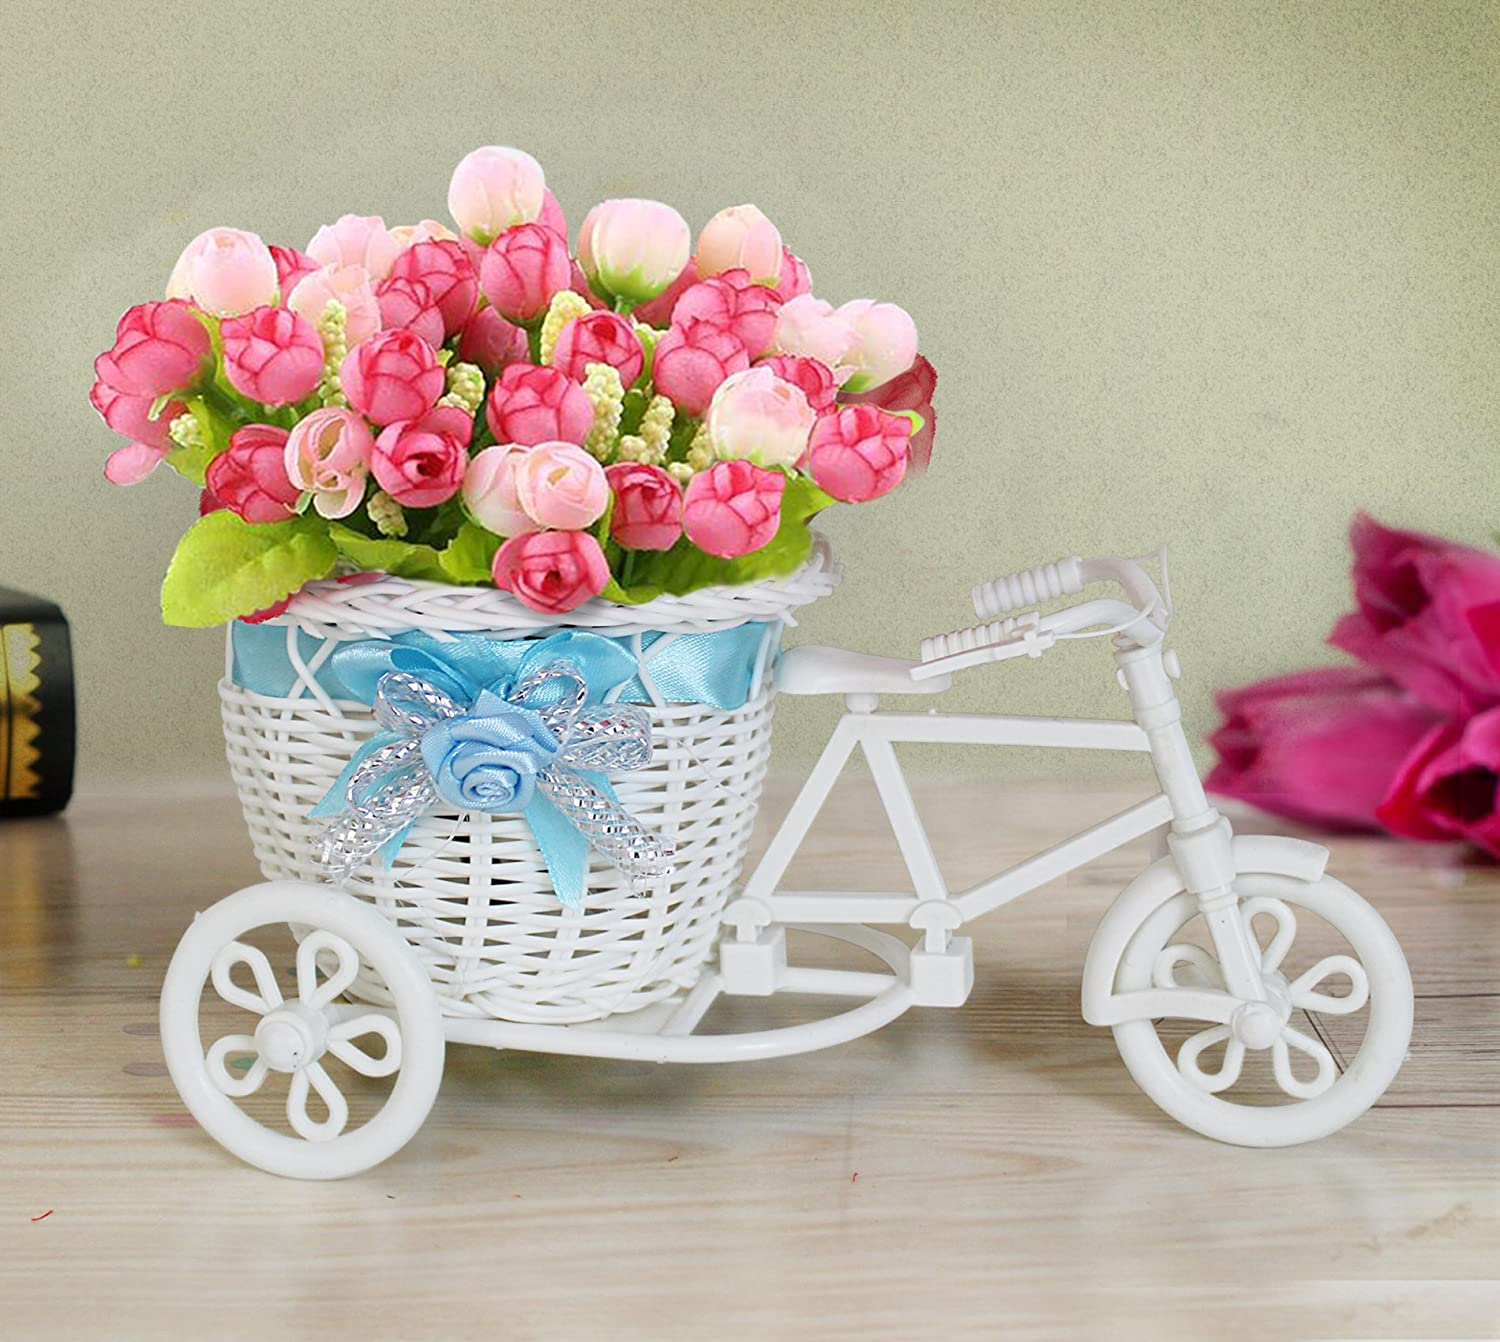 Buy tied ribbons cycle shape flower vase with peonies bunches buy tied ribbons cycle shape flower vase with peonies bunches online at low prices in india amazon reviewsmspy